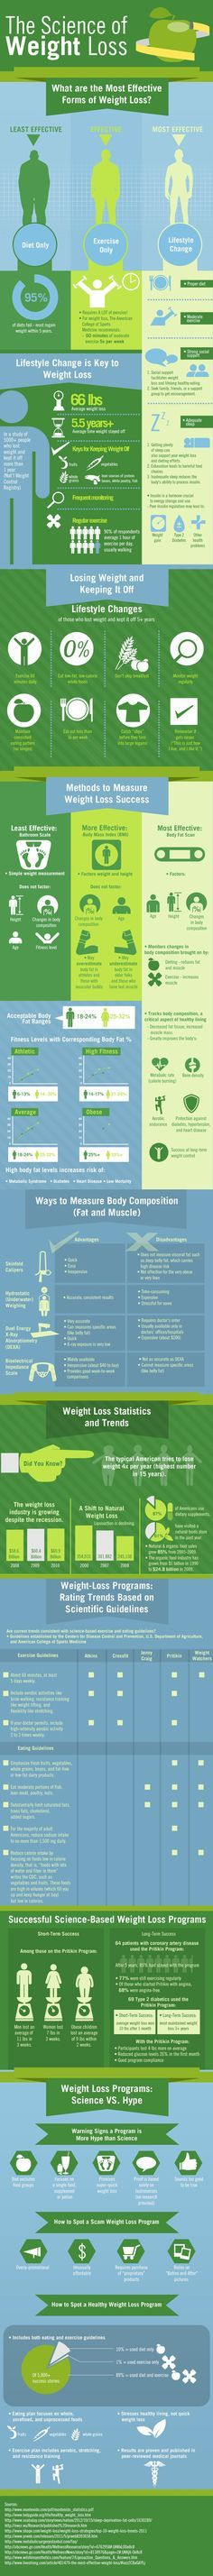 The Science of Weight-Loss [Infographic]